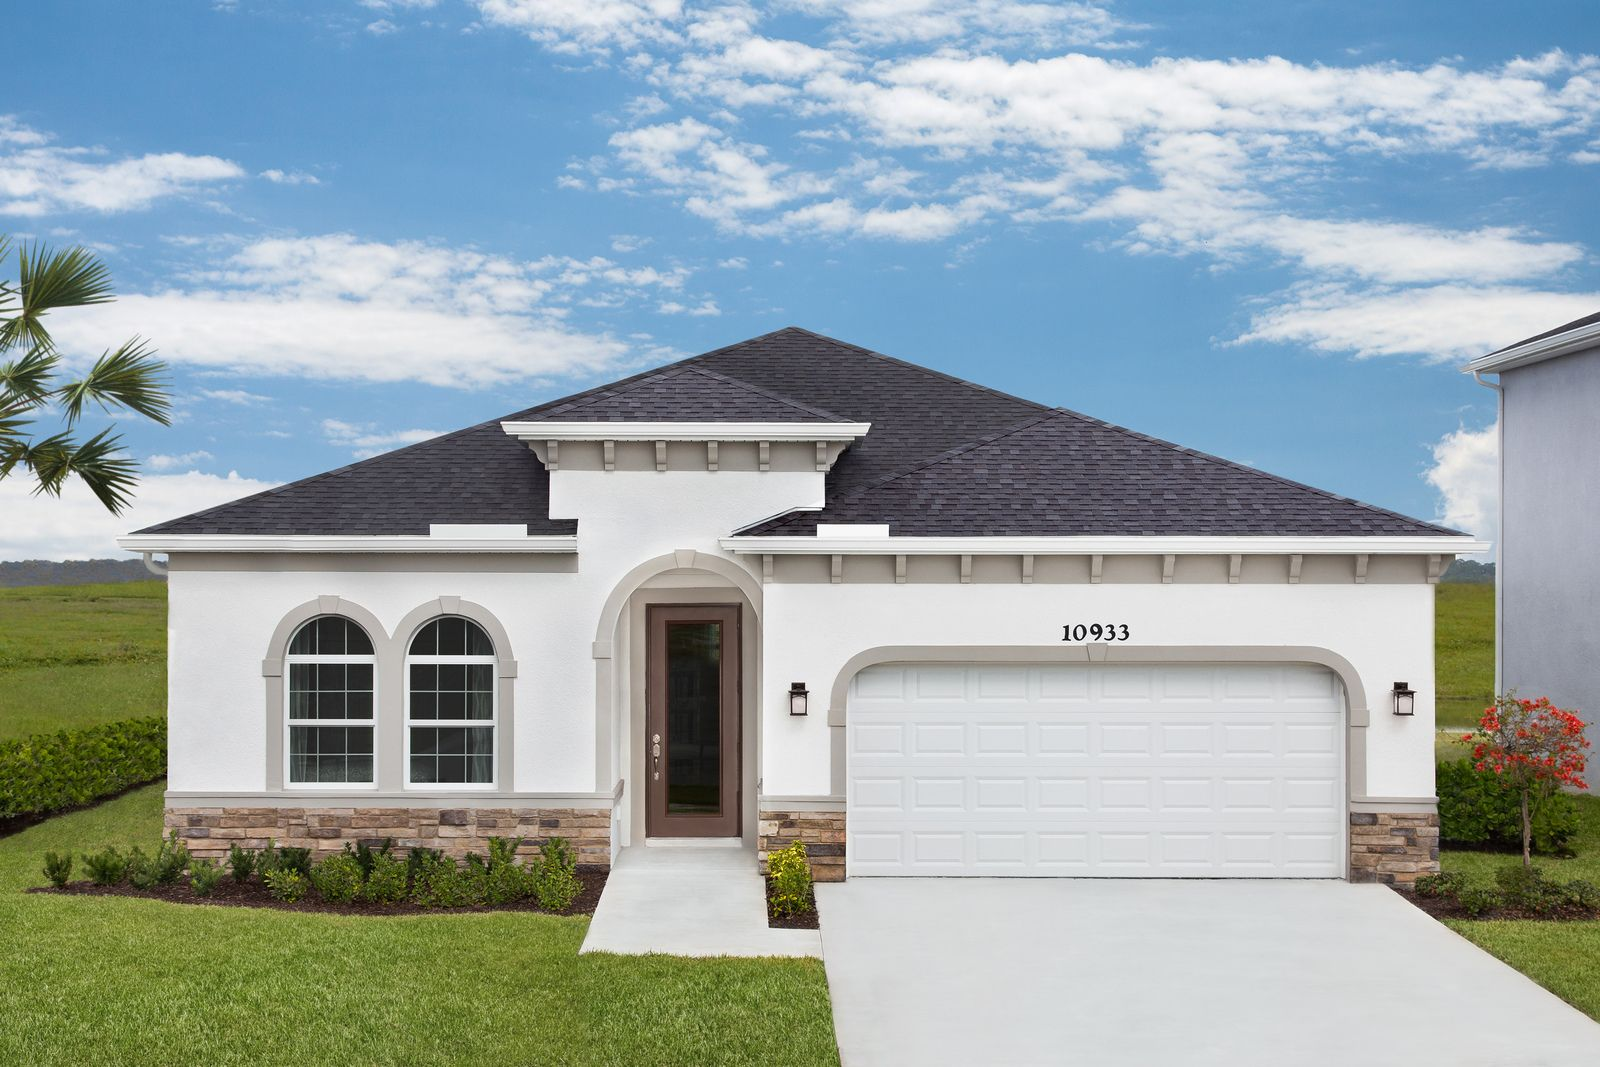 NEW SINGLE-FAMILY HOMES IN ST. LUCIE COUNTY FROM MID $300S:Own an affordable single-family home in a convenient location from the mid $300s in Port St. Lucie. Visit us today!